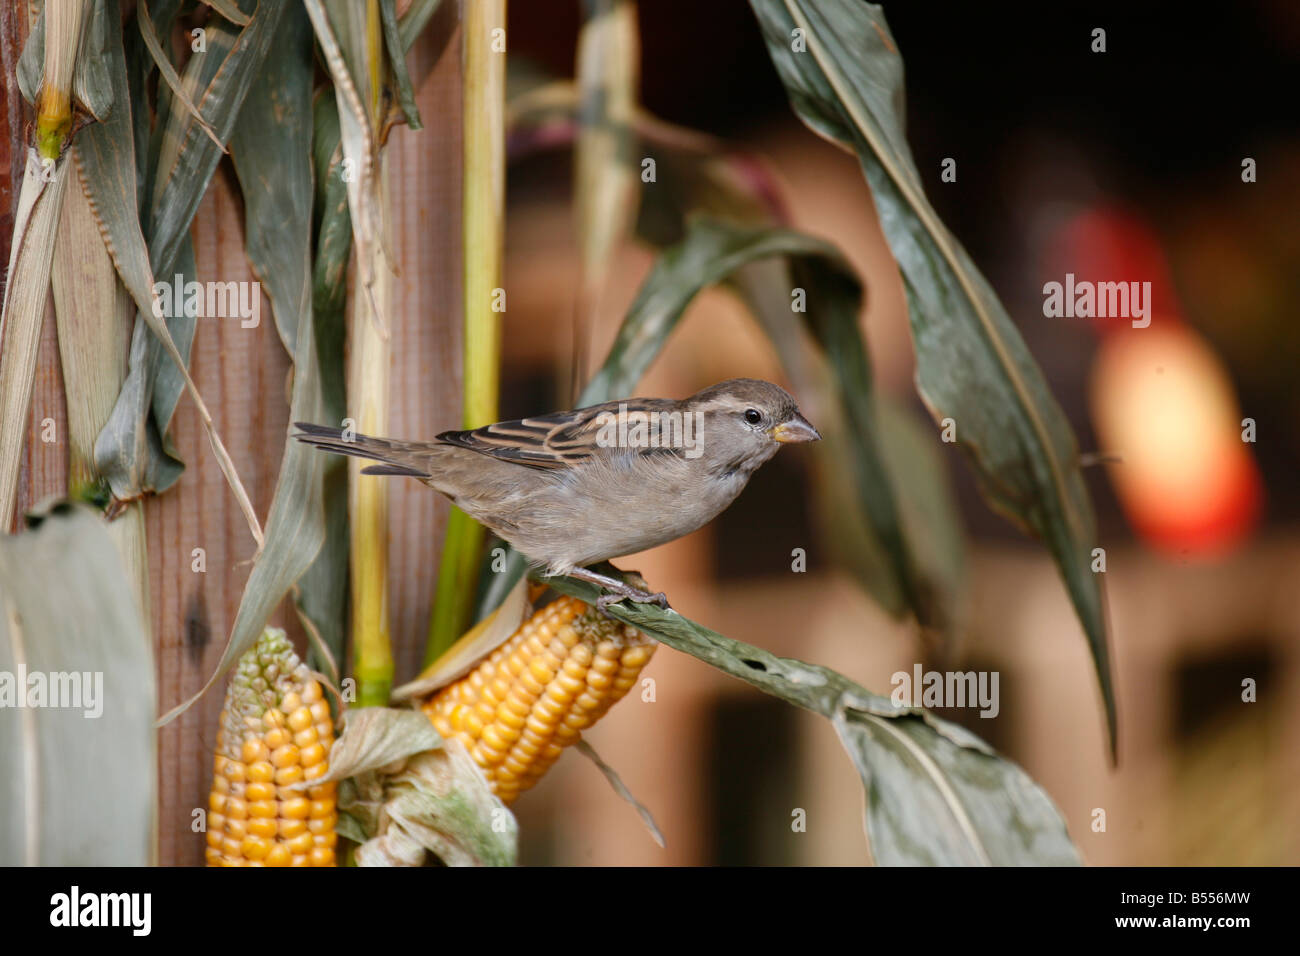 House Sparrow (Passer domesticus) female sitting among corncobs in a harvest festival decoration - Stock Image